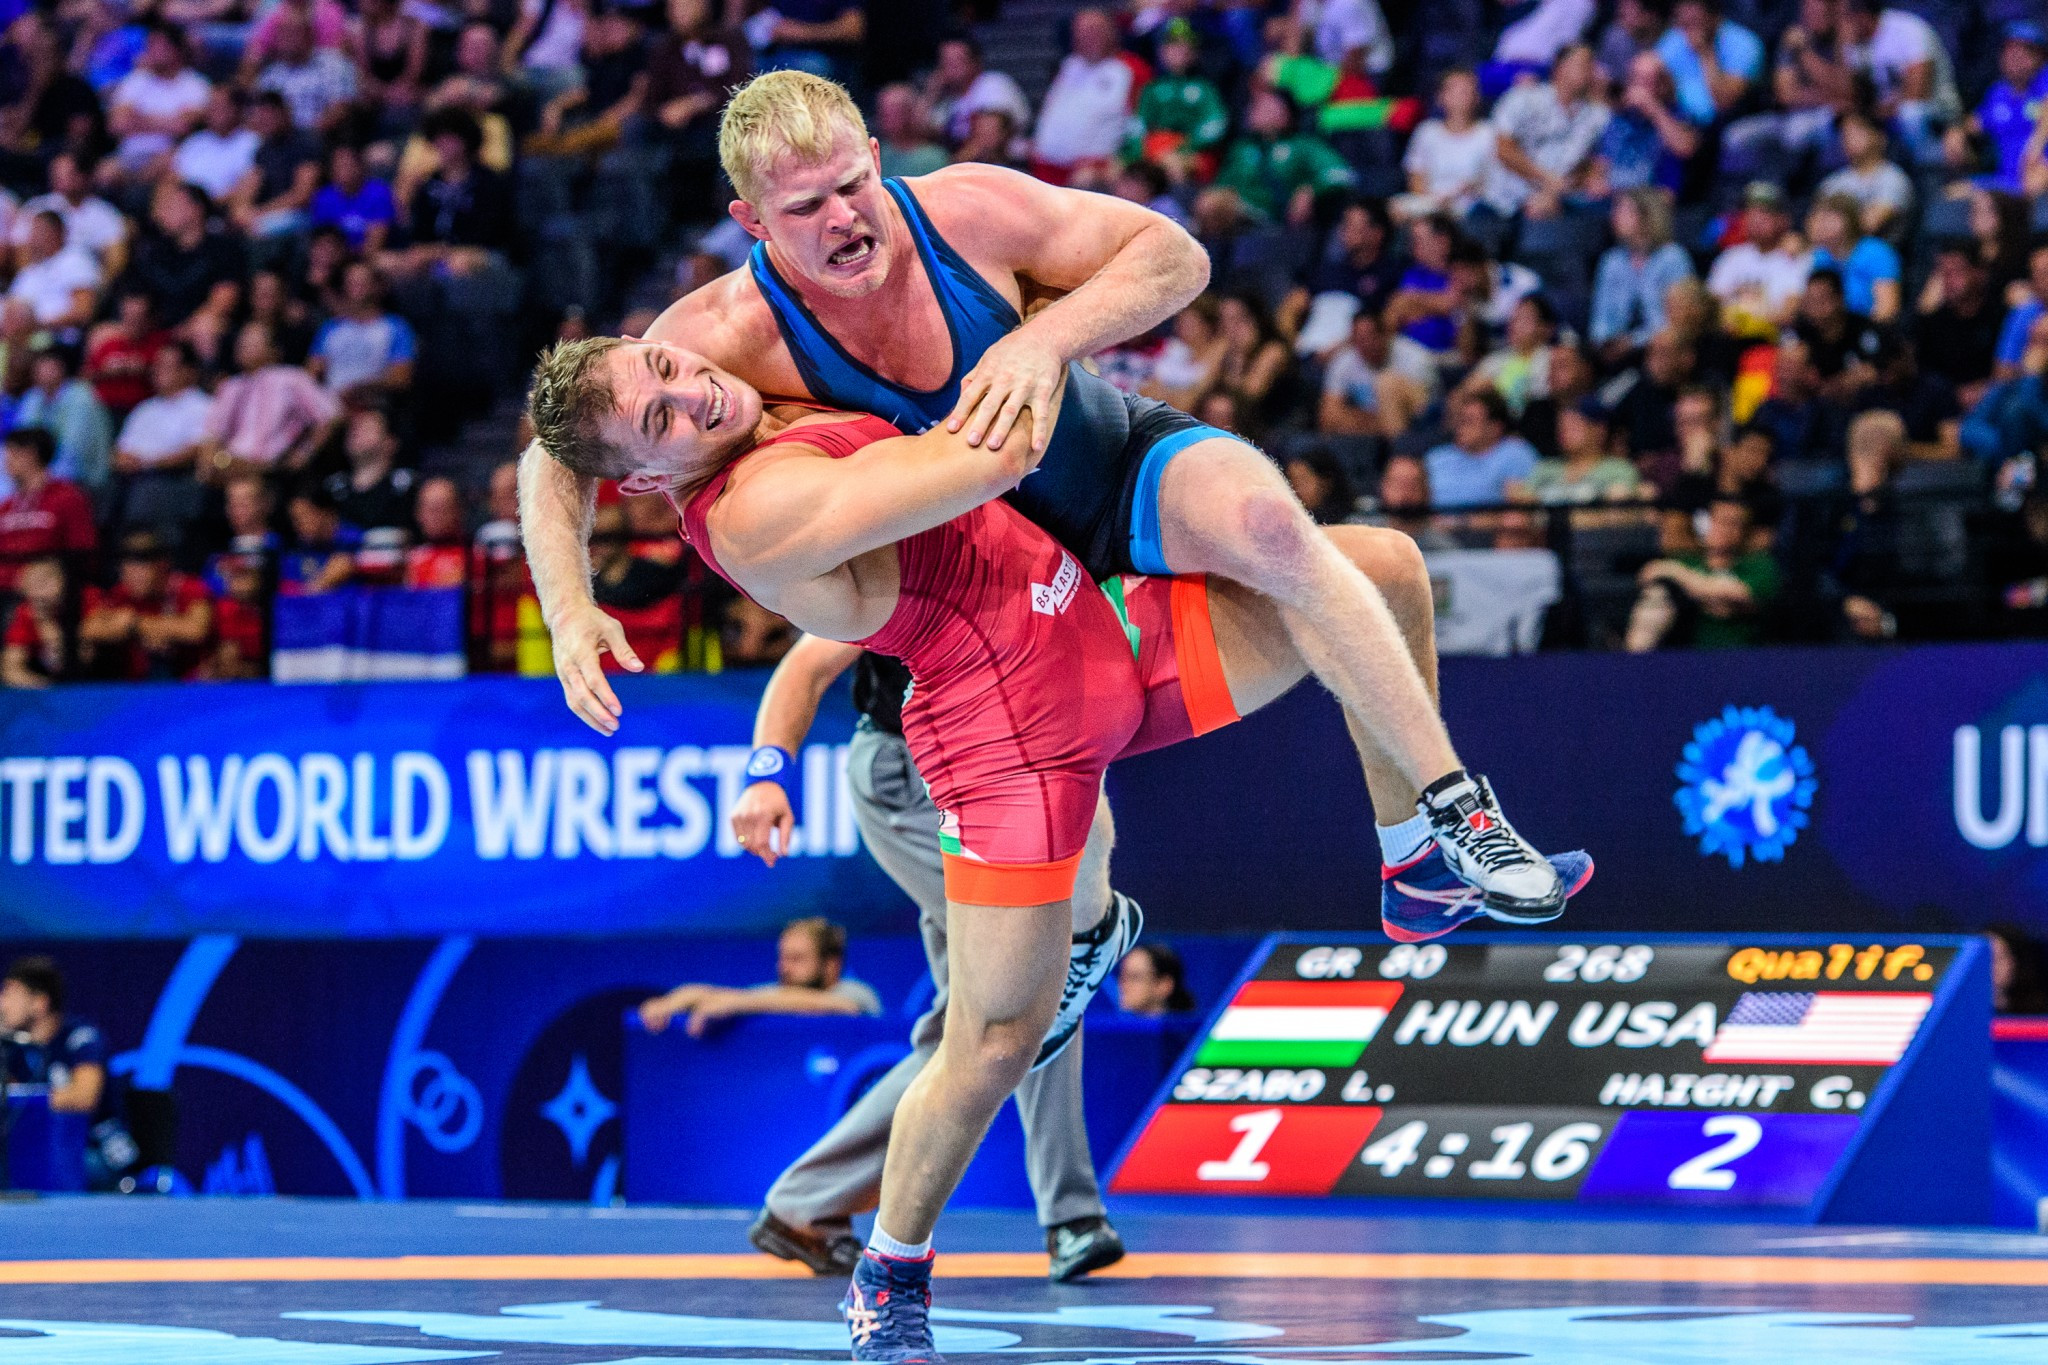 UWW Wrestling World Championships 2017: Day two of competition